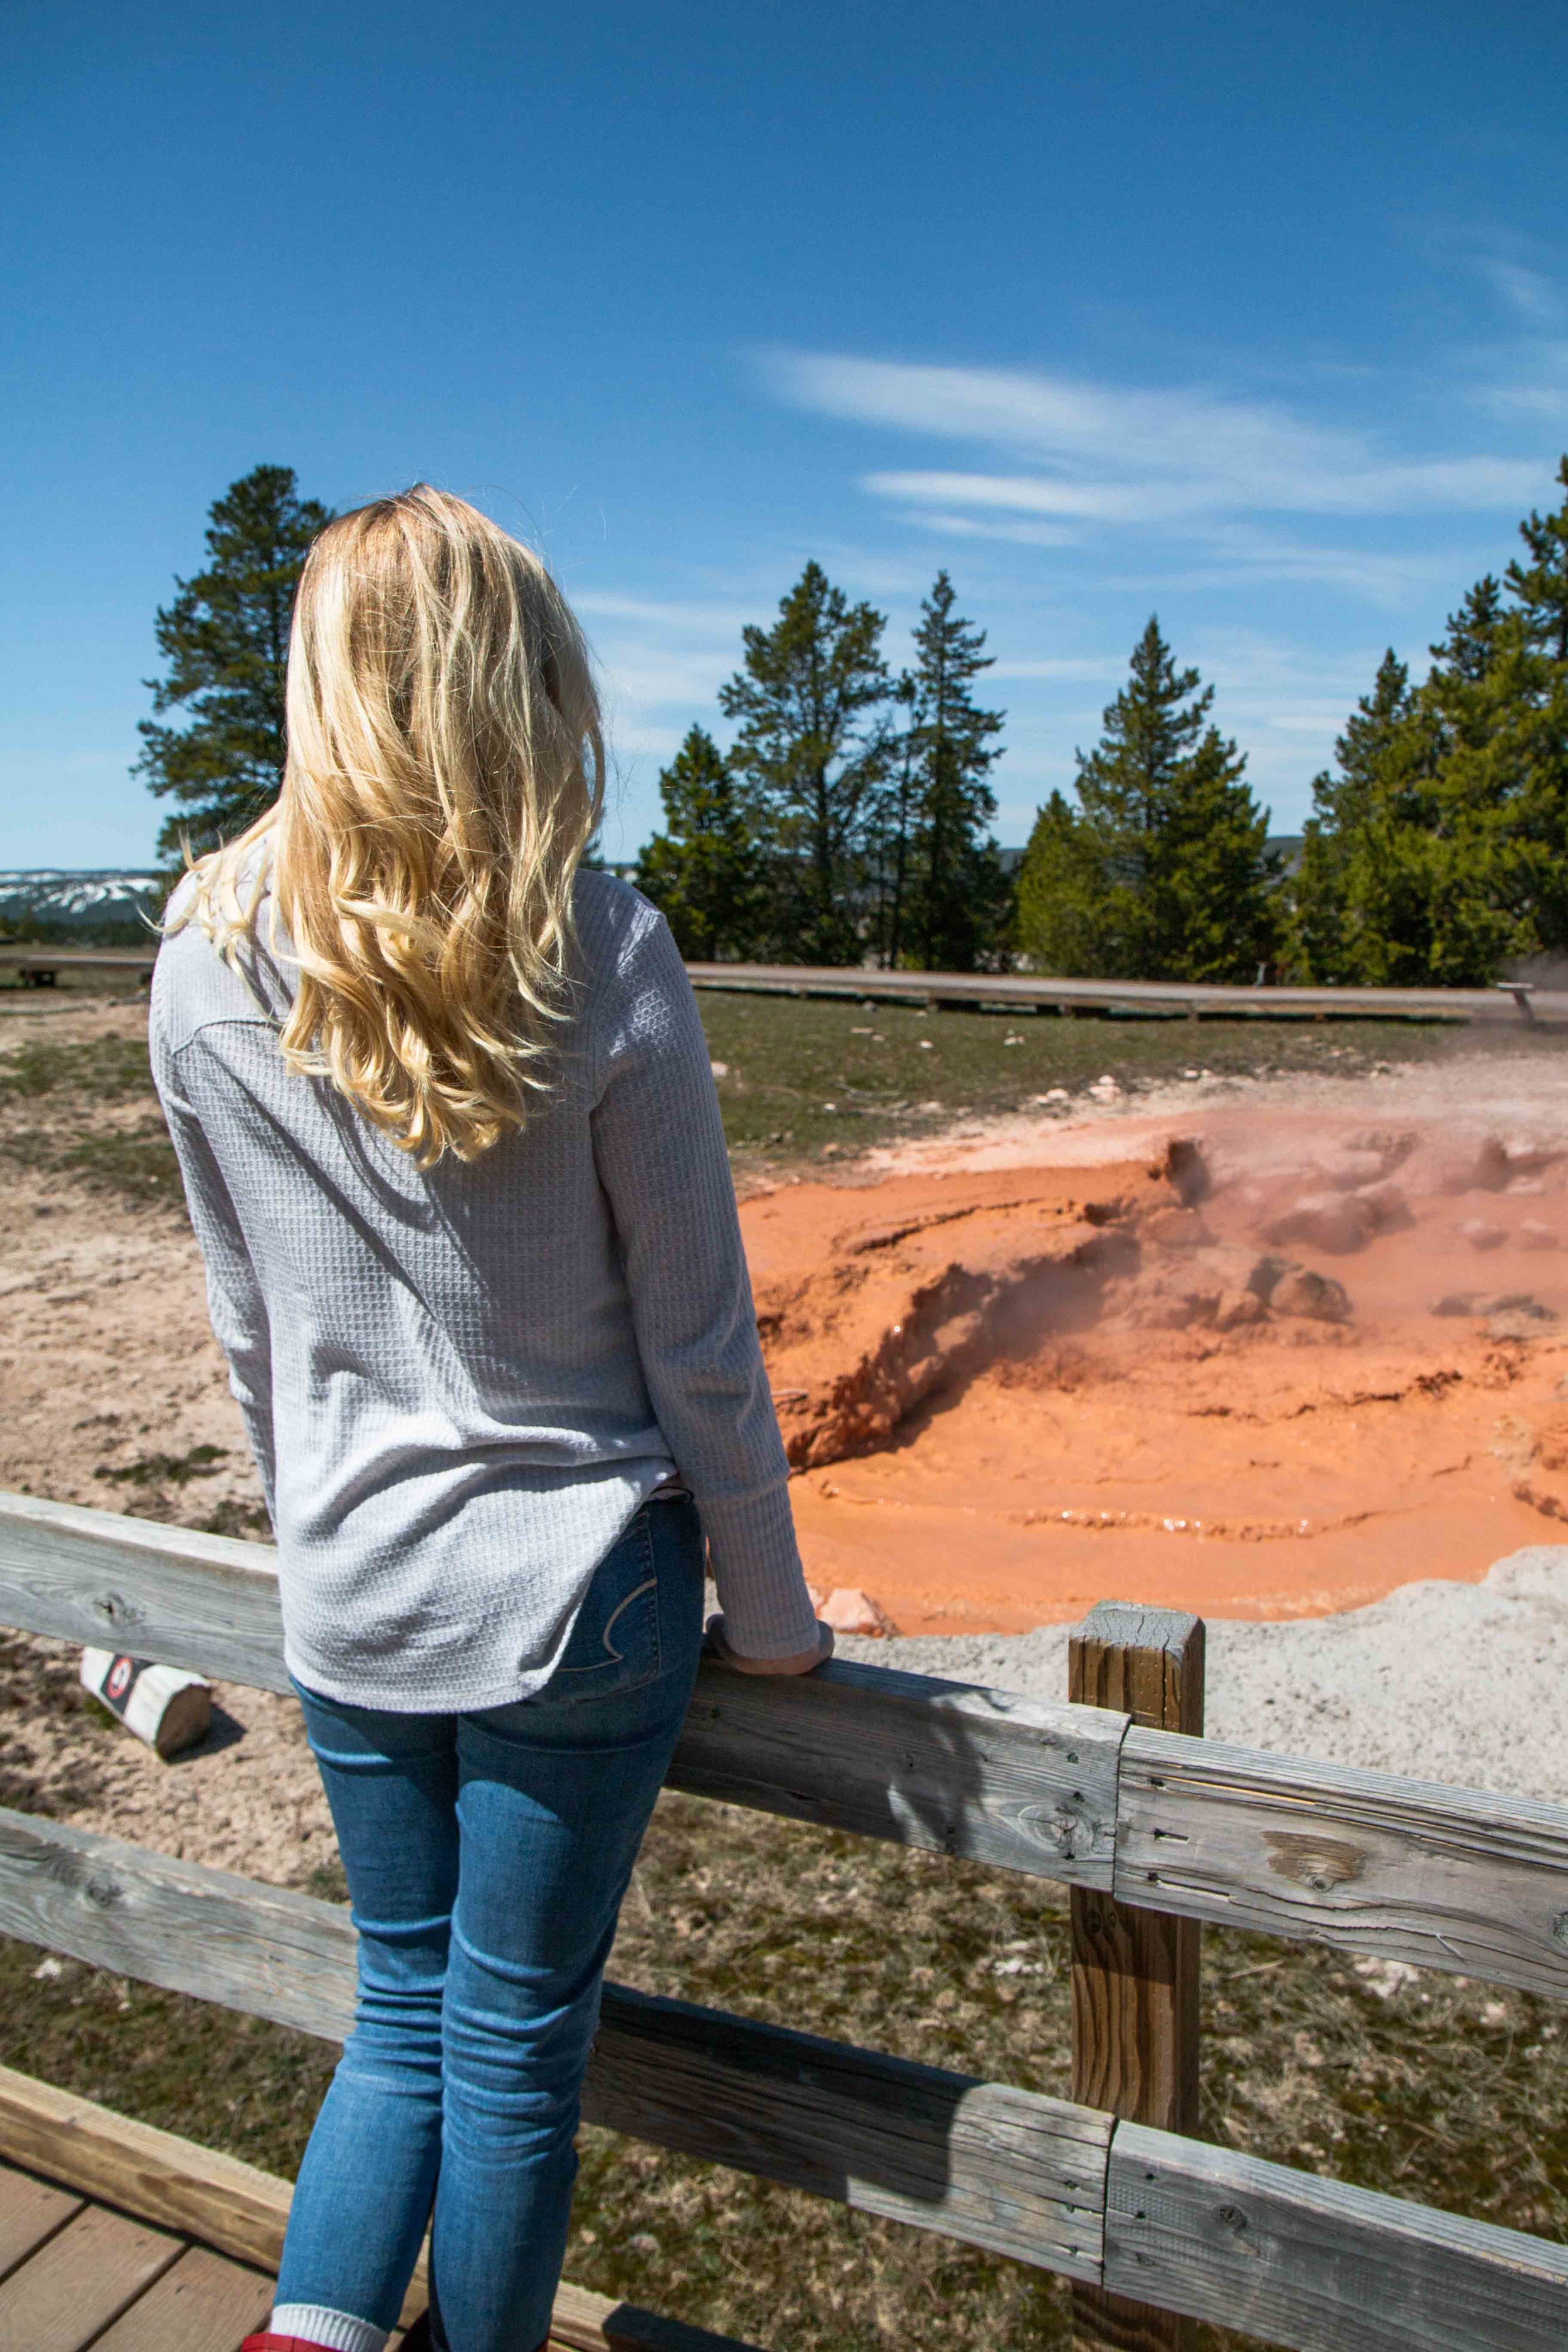 Fountain Paint Pot | The Ultimate Travel Guide for Yellowstone National Park by Travel + Lifestyle blogger Bri Sul